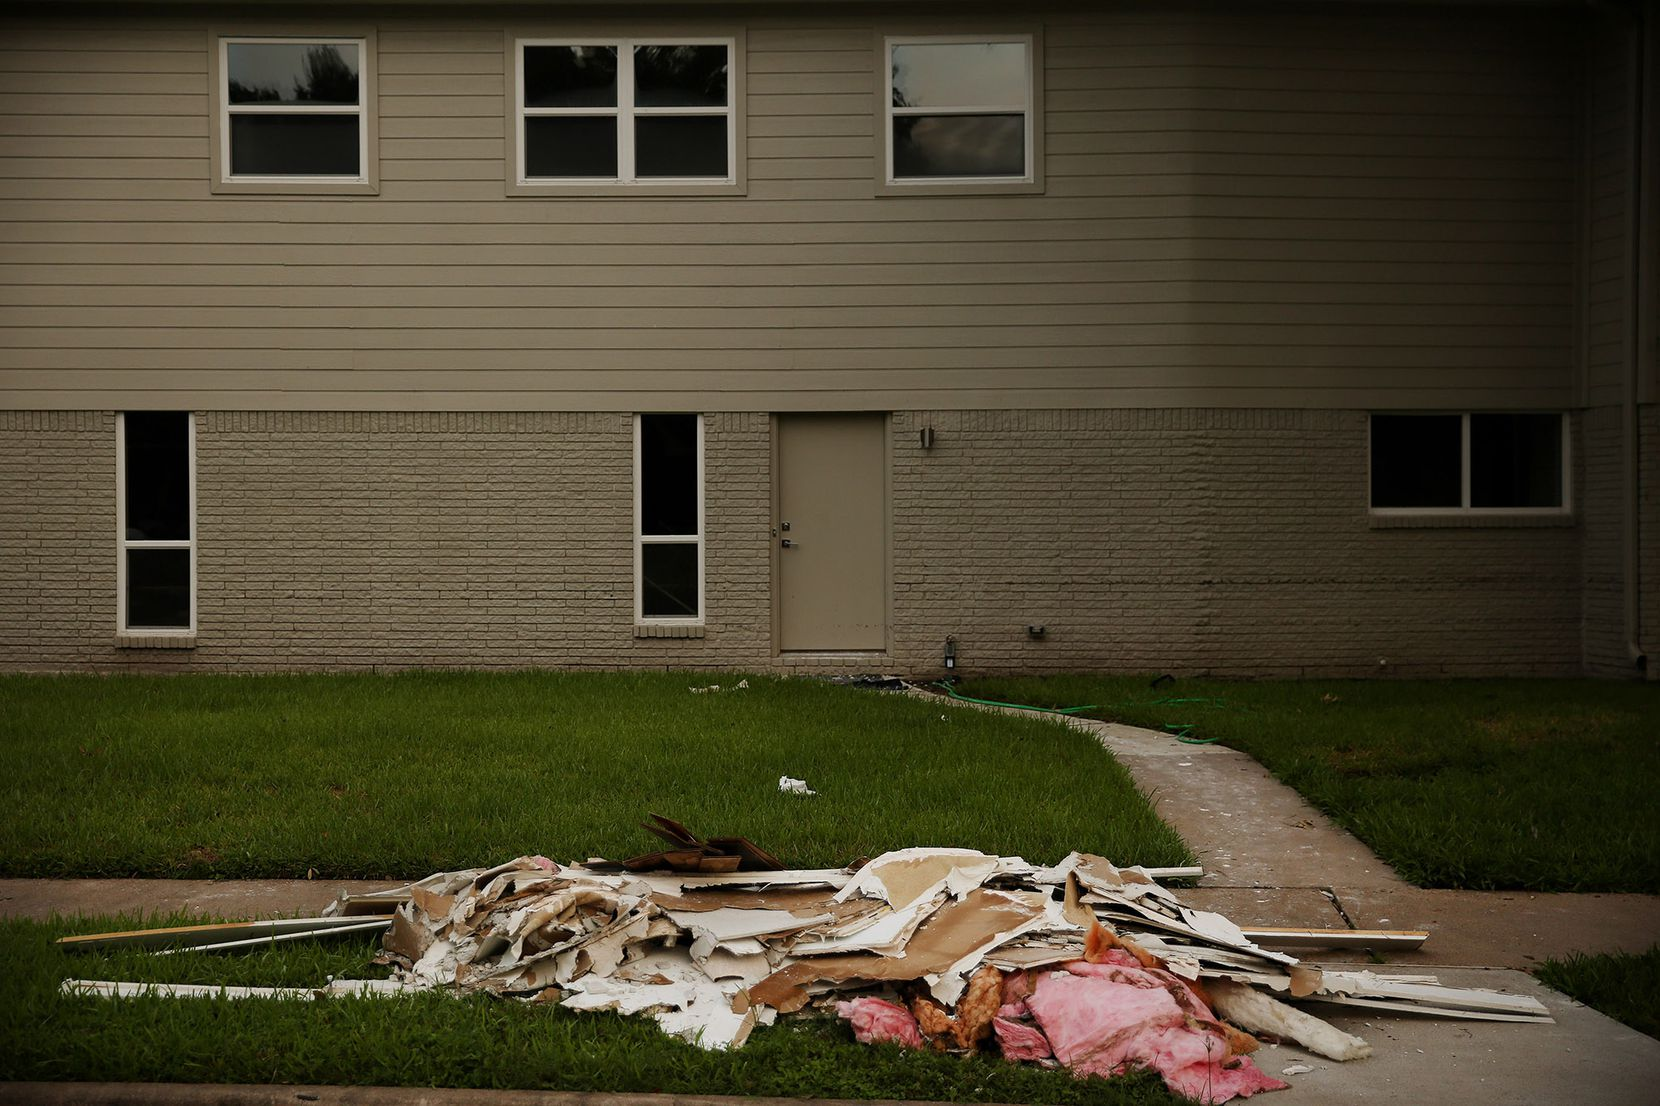 Elevated homes didn't appear to have as much as damage as some of their neighbors' after Harvey. Residents in the area said people who experienced flooding in the past adjusted the height of their homes to minimize the impact of flooding in the future.